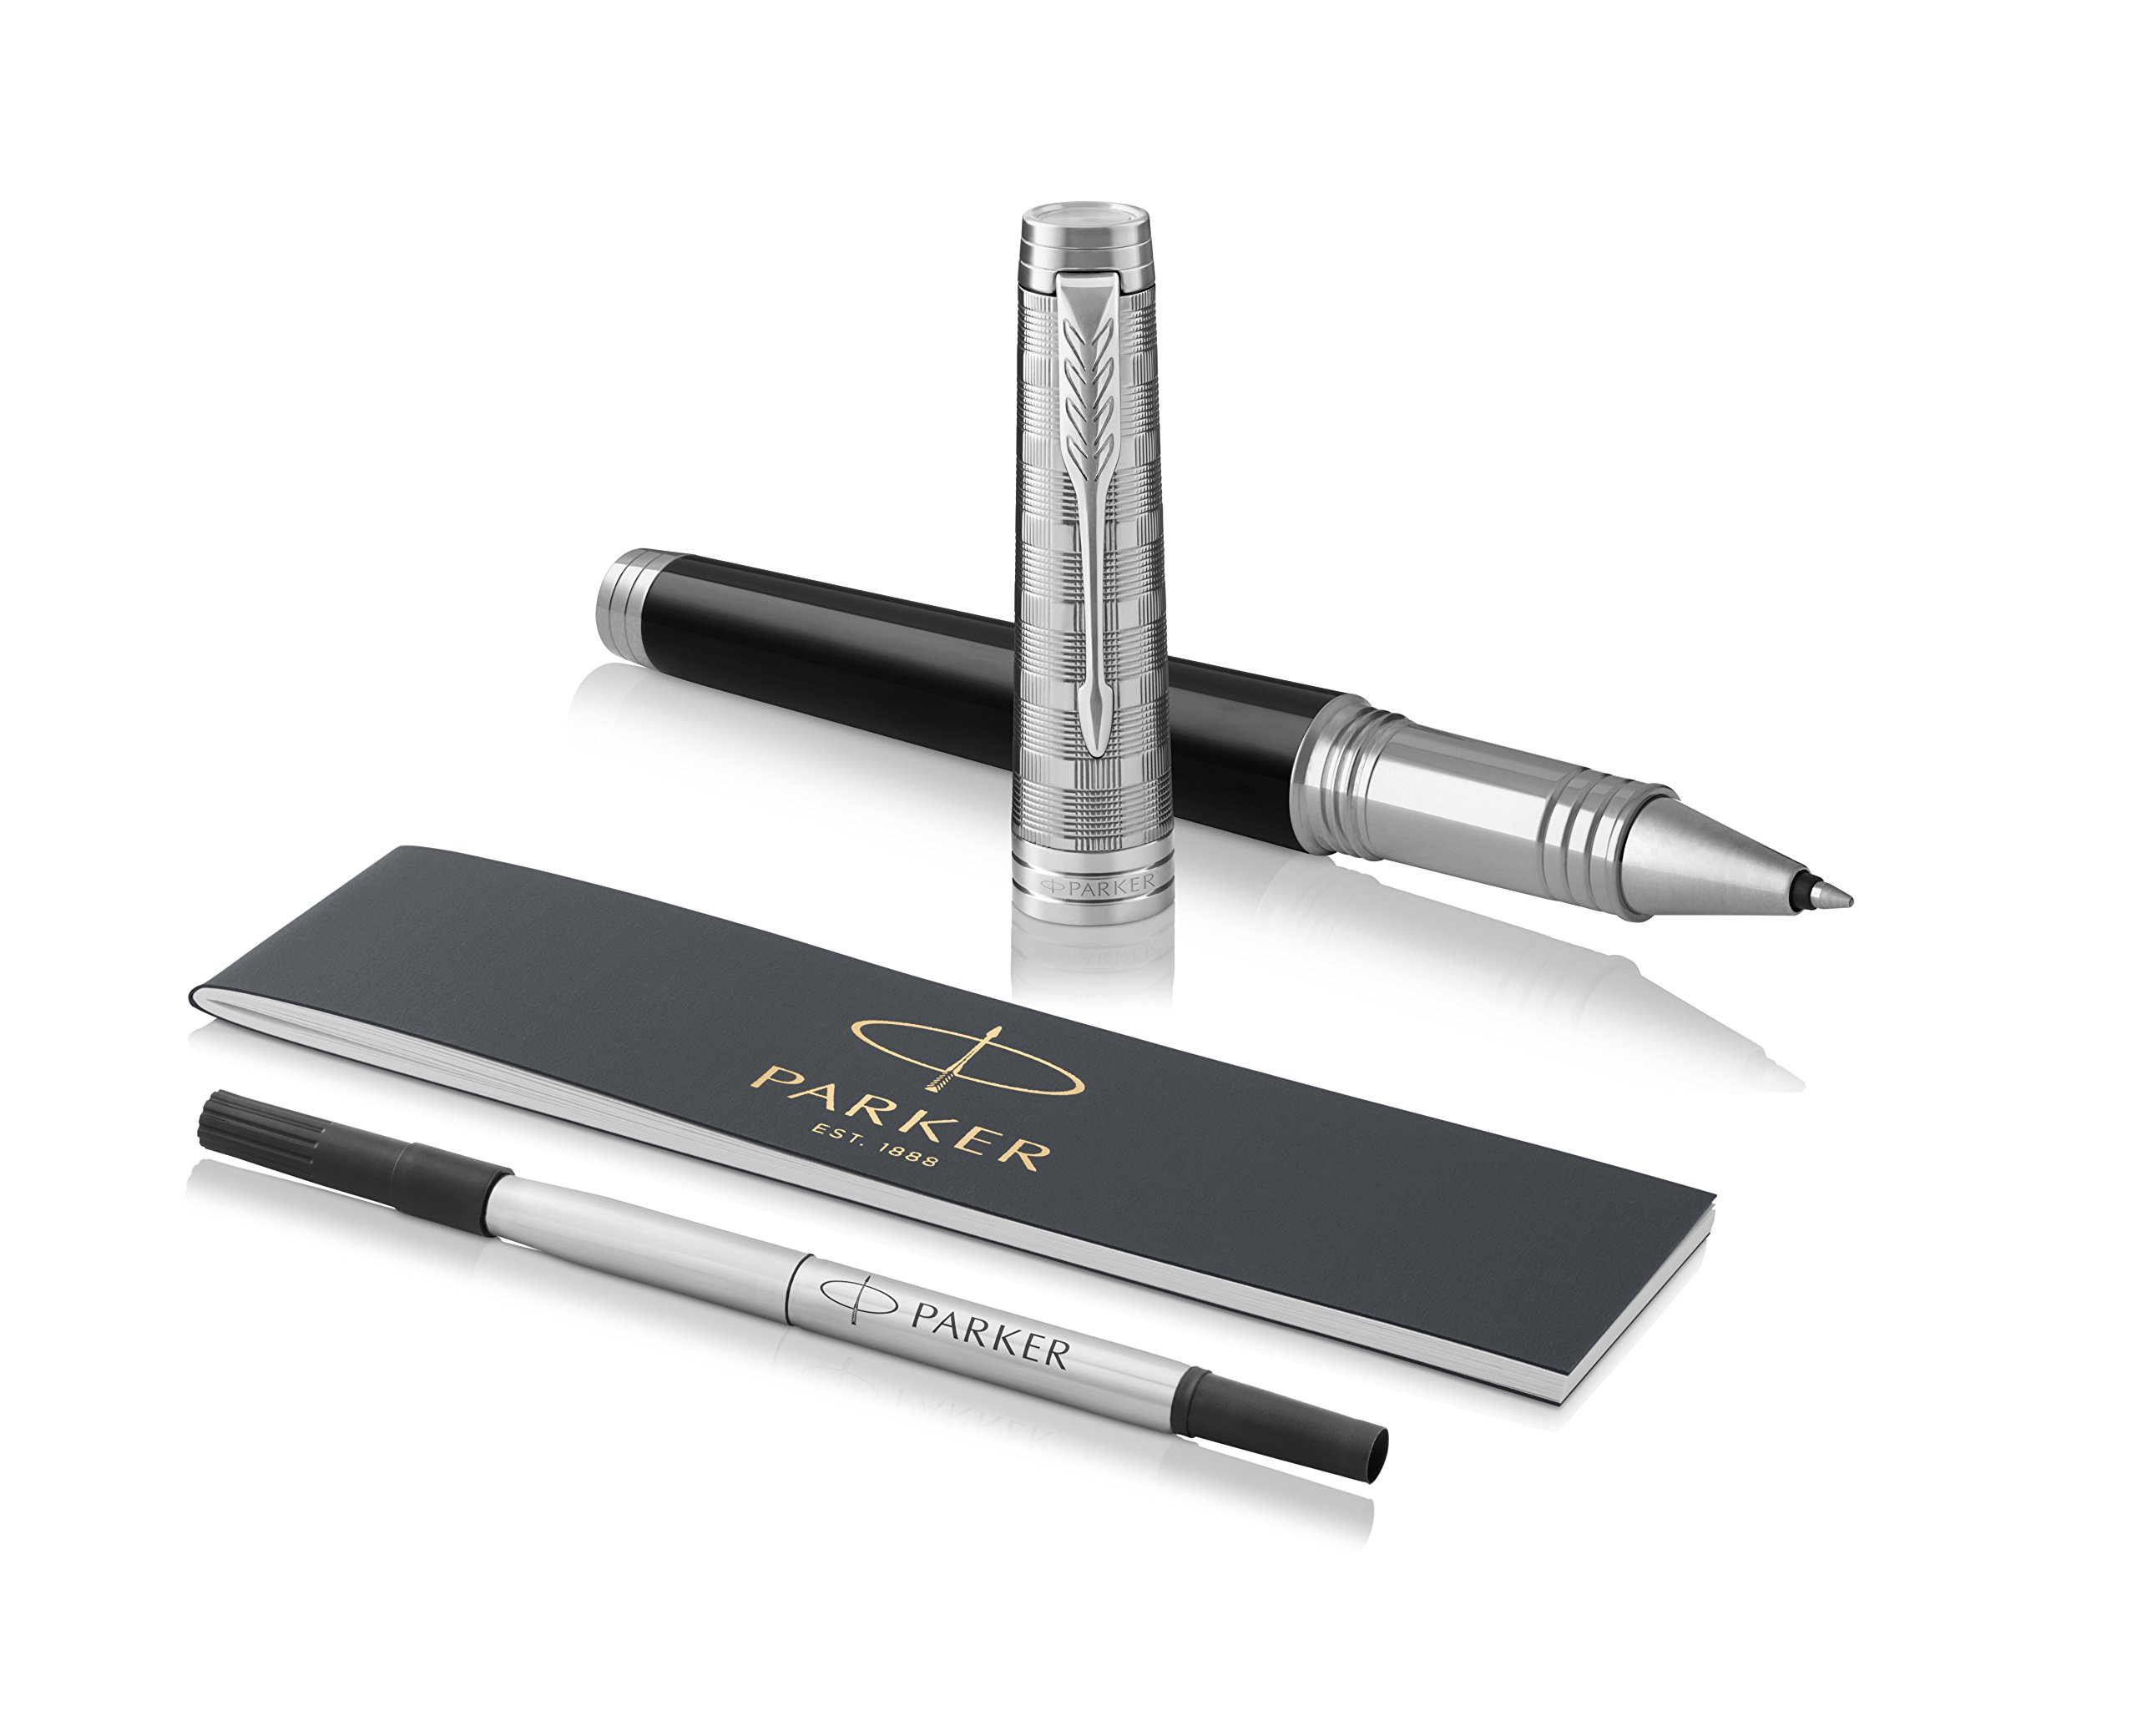 PARKER Premier Rollerball Pen, Custom Tartan Lacquer and Metal with Fine Point Black Ink Refill